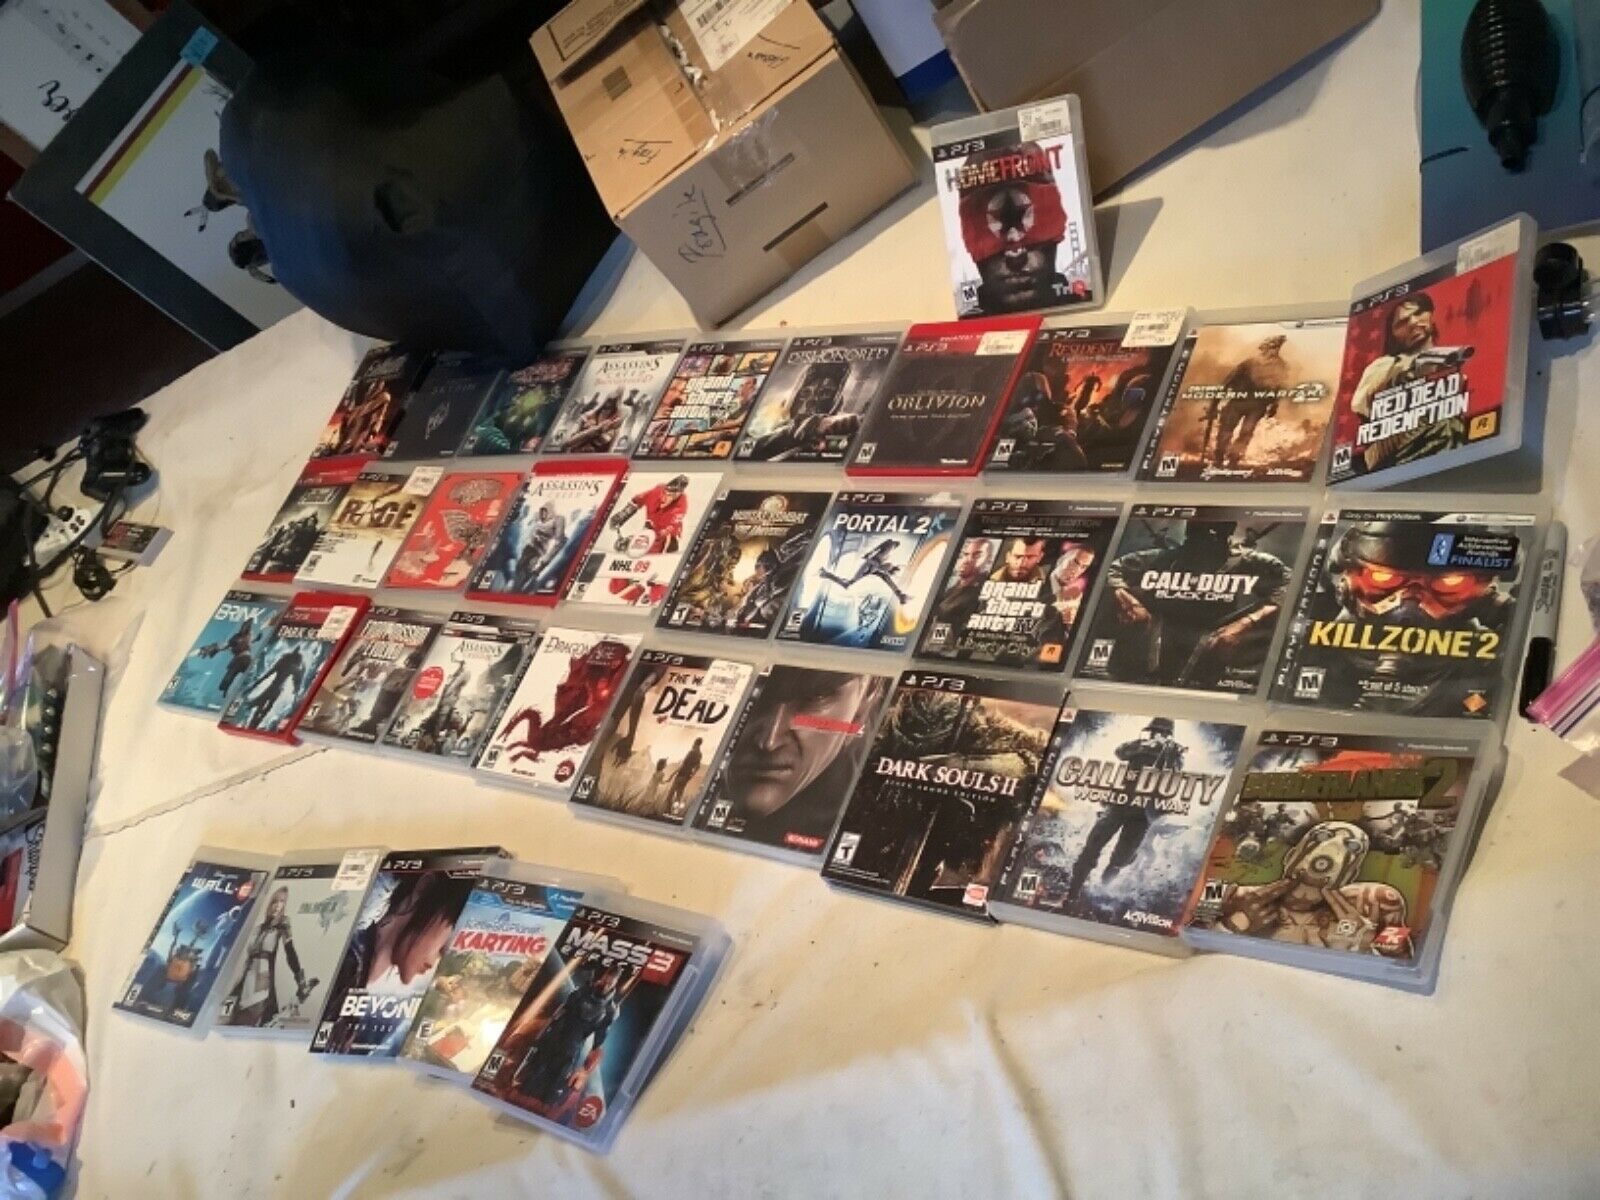 38 Minty PS3 games, cases, Working unit, cords,controllers